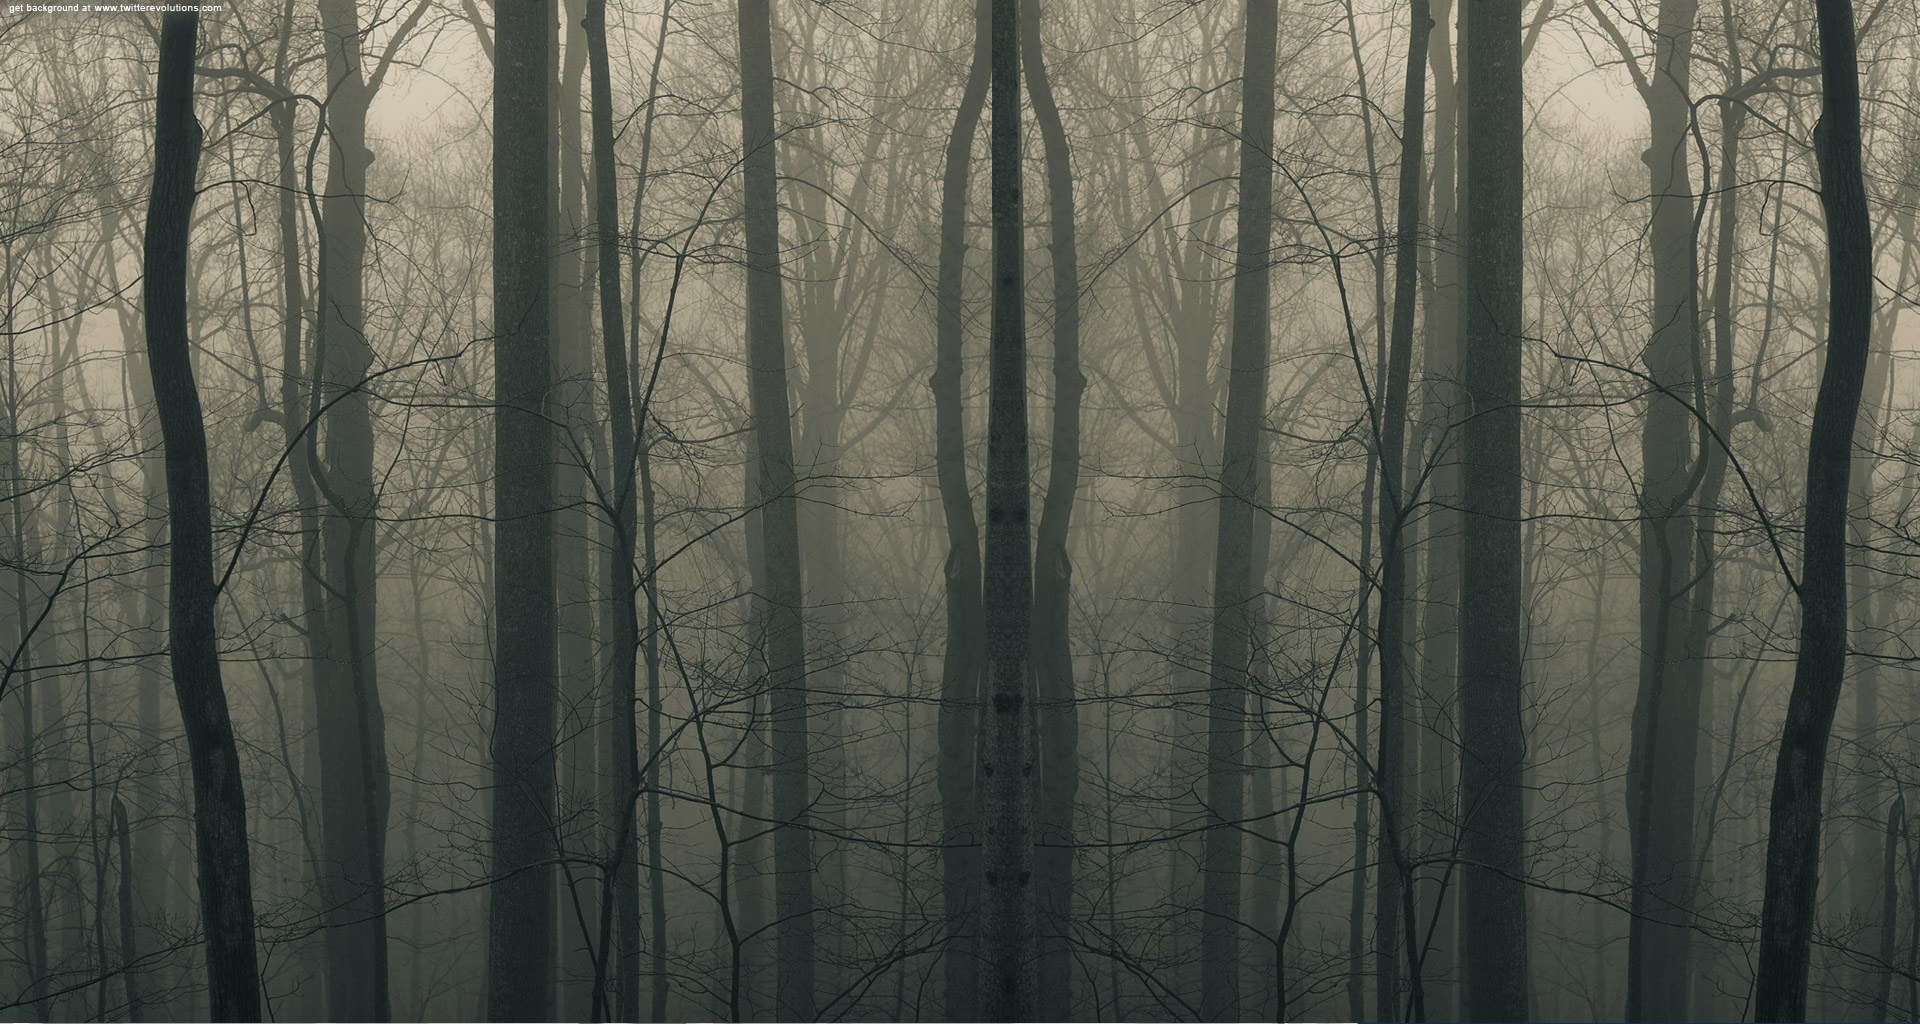 These Park Rangers Describe The Creepiest Things They've EVER Seen